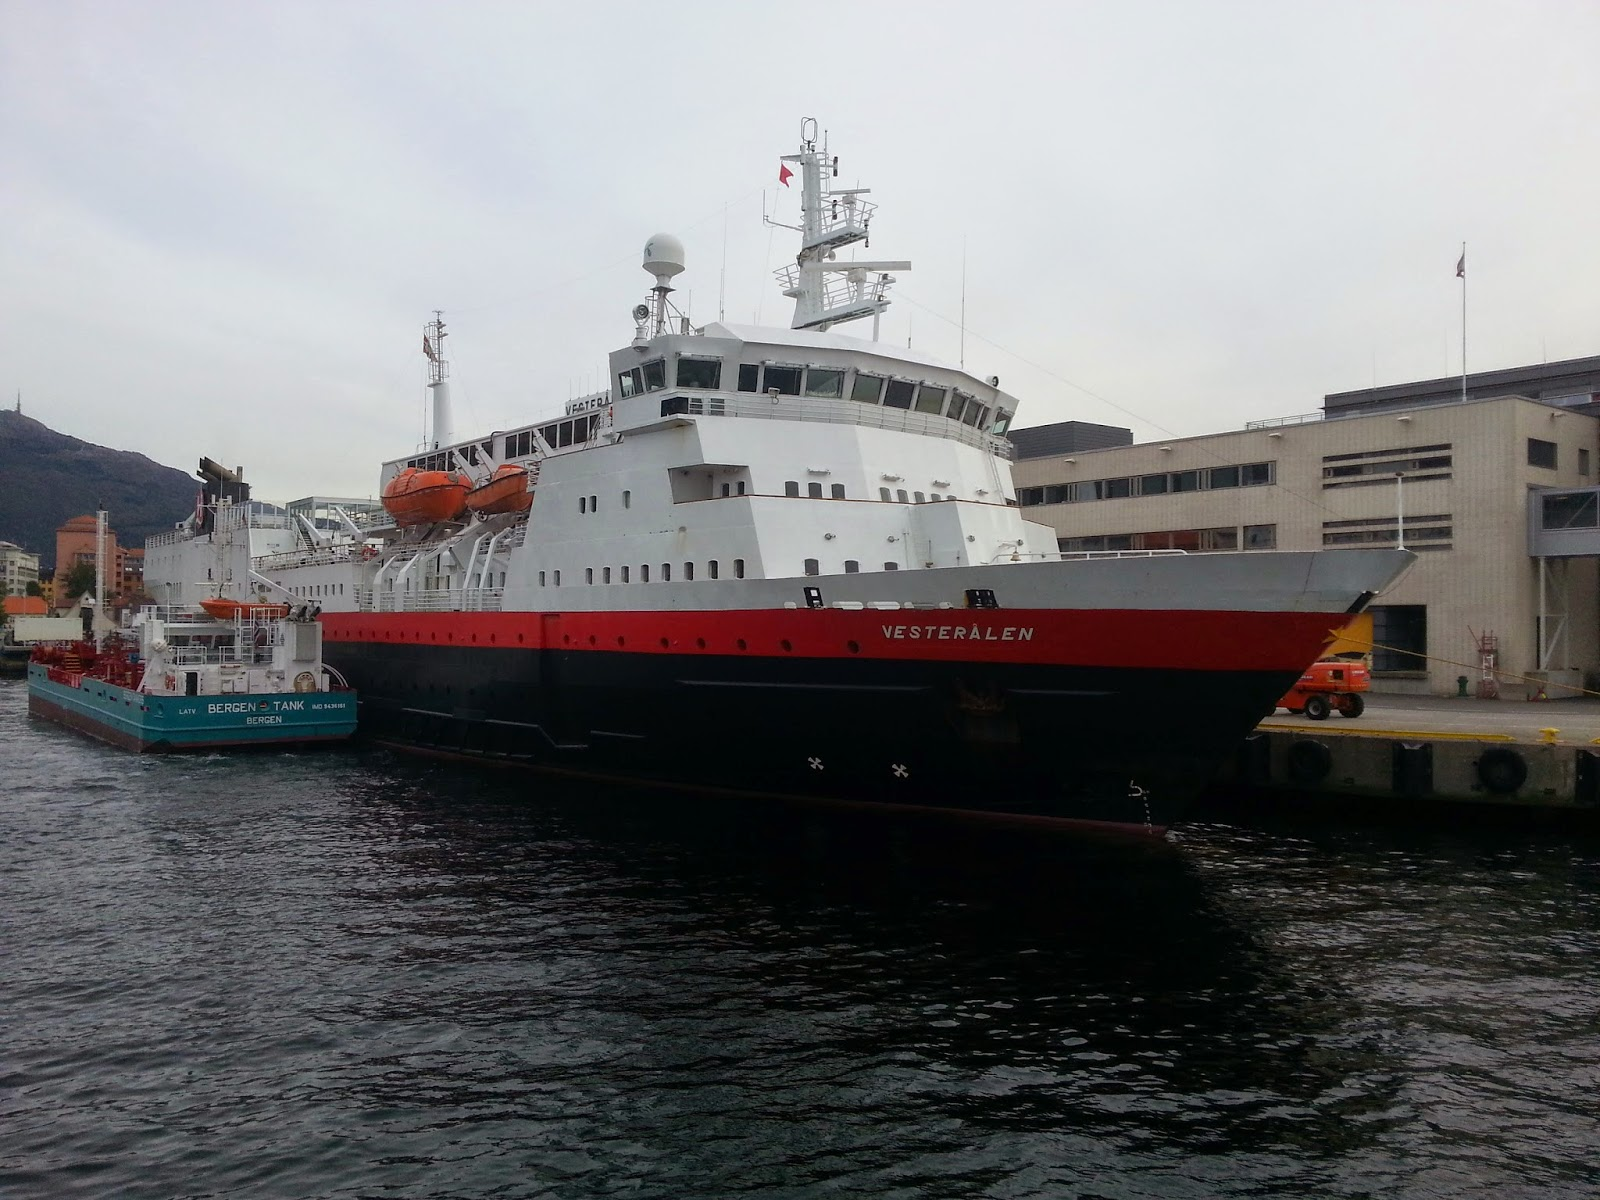 Hurtigruten MS Vesterålen in Bergen, Norway